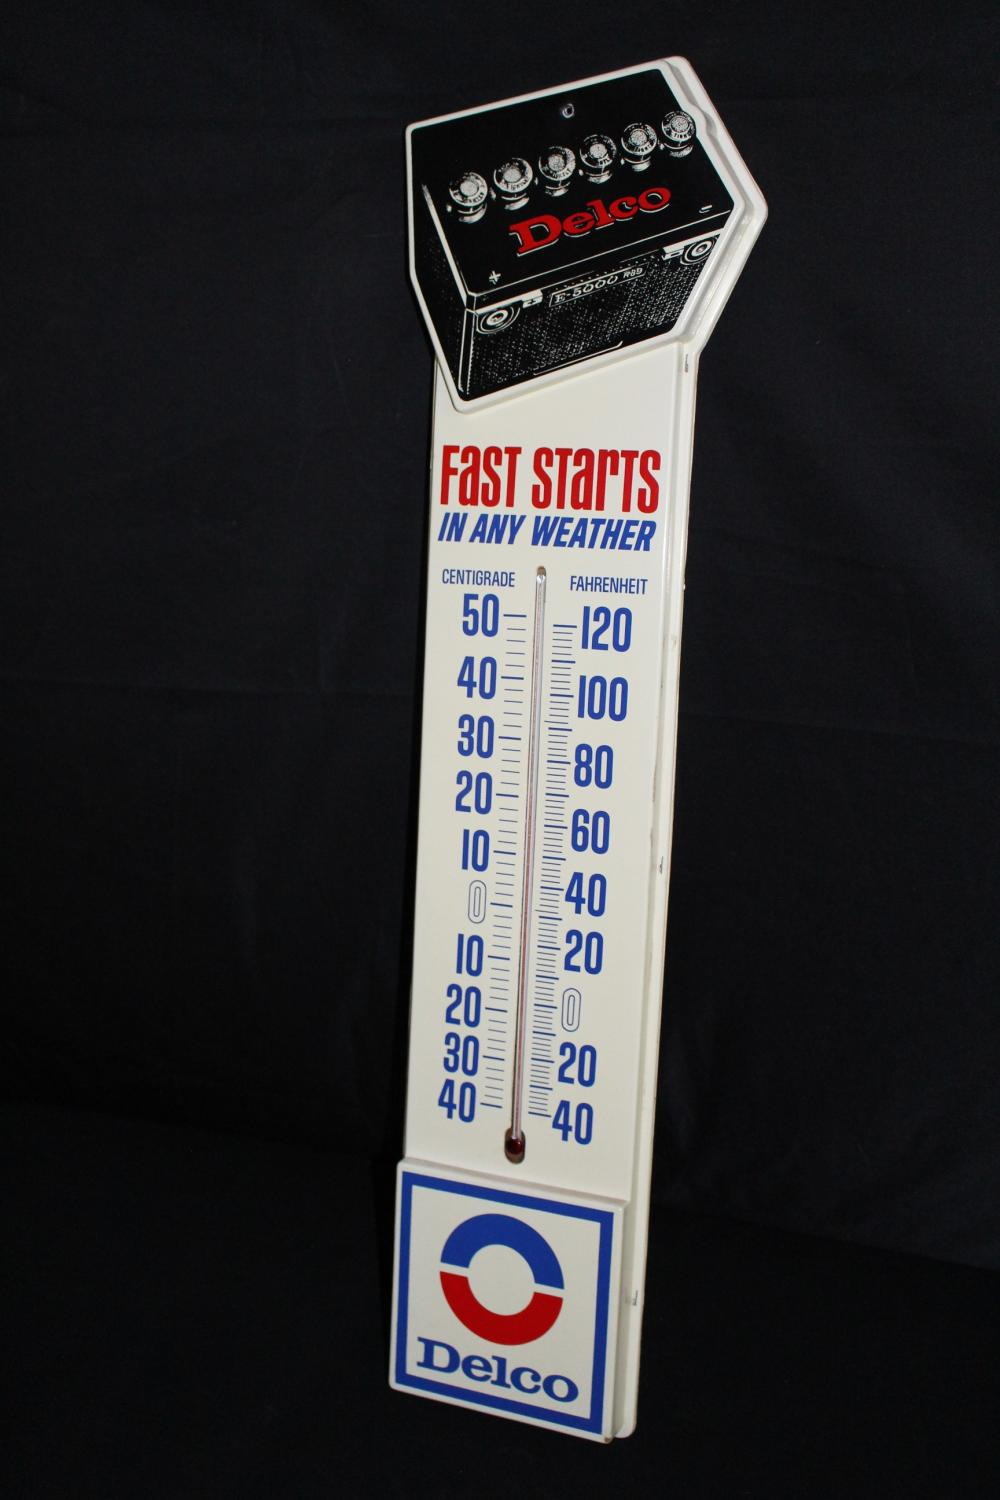 DELCO BATTERY BATTERIES THERMOMETER SIGN